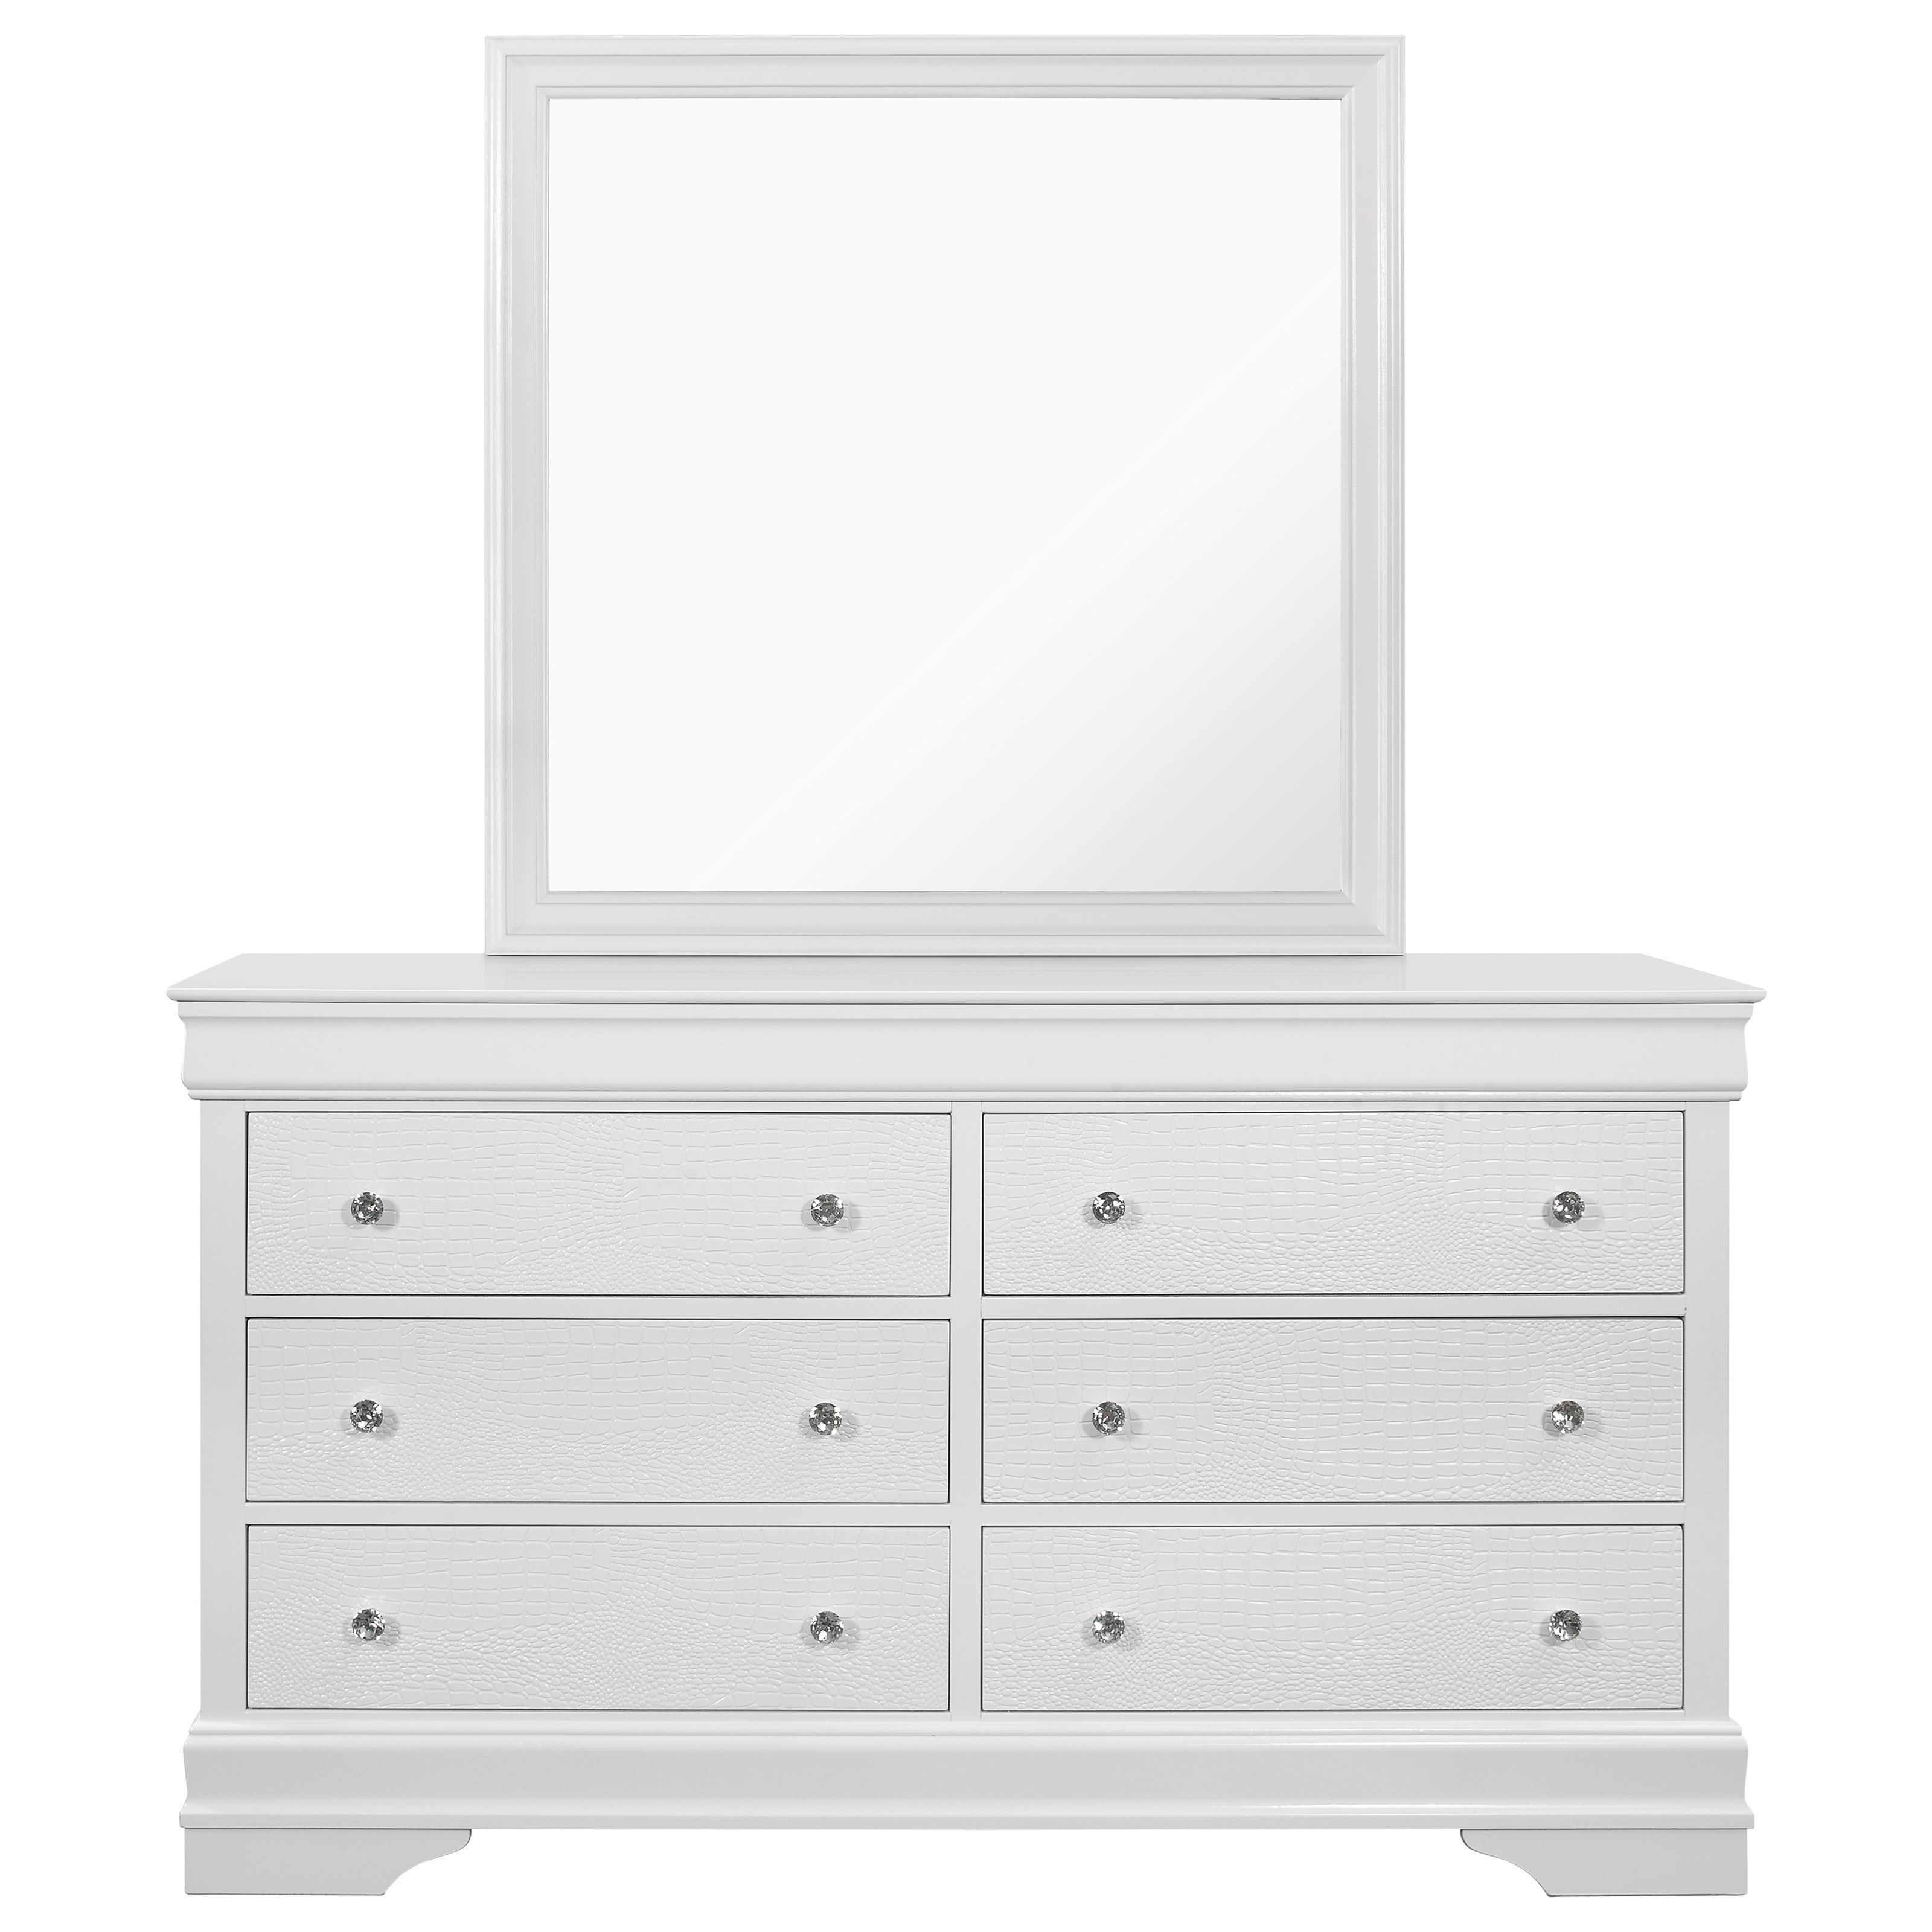 Global Furniture Pompei Pompei Metallic White Dr Mr Transitional 6 Drawer Dresser And Mirror Set Corner Furniture Dresser Mirror Sets